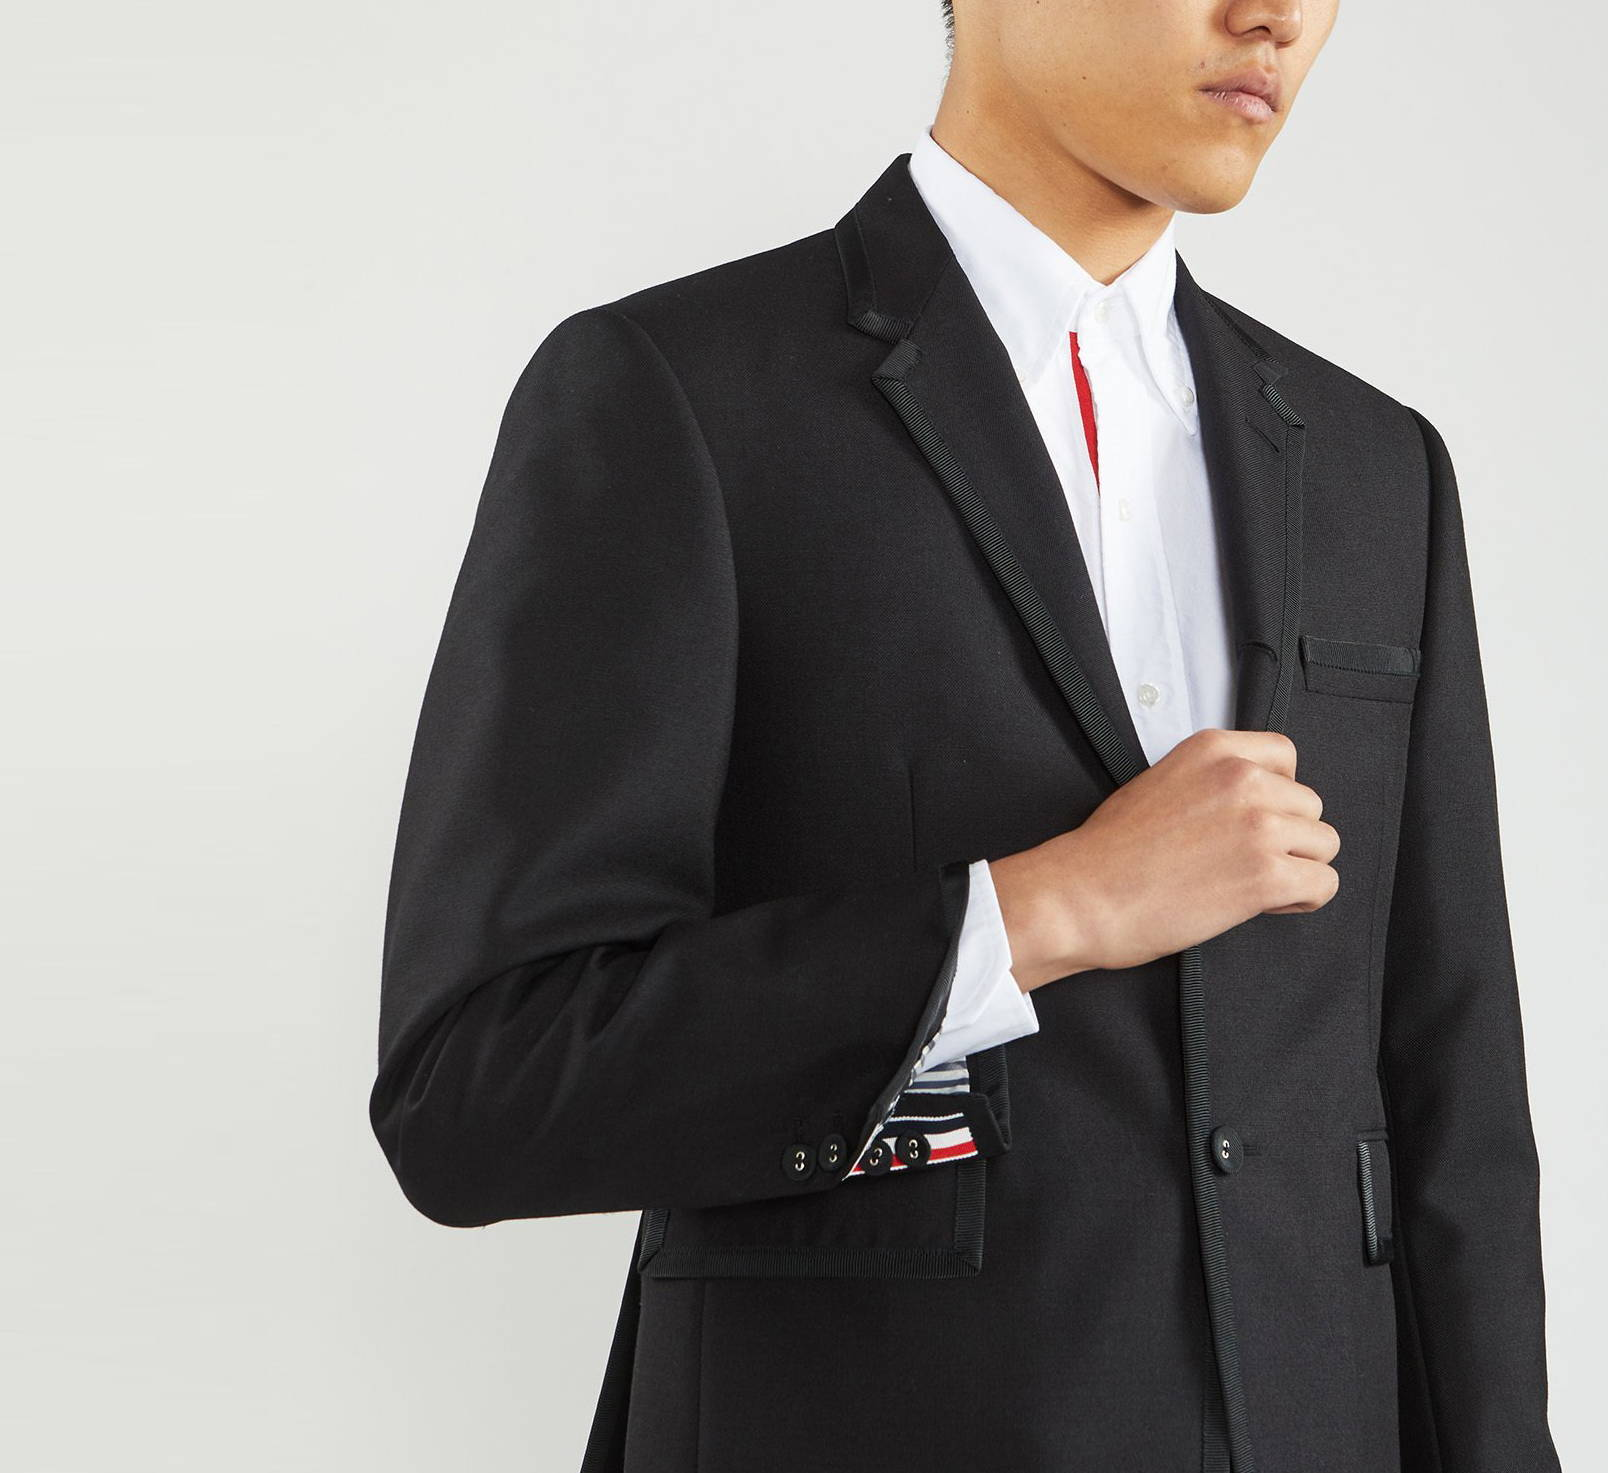 Men's Apparel Featuring Thom Browne